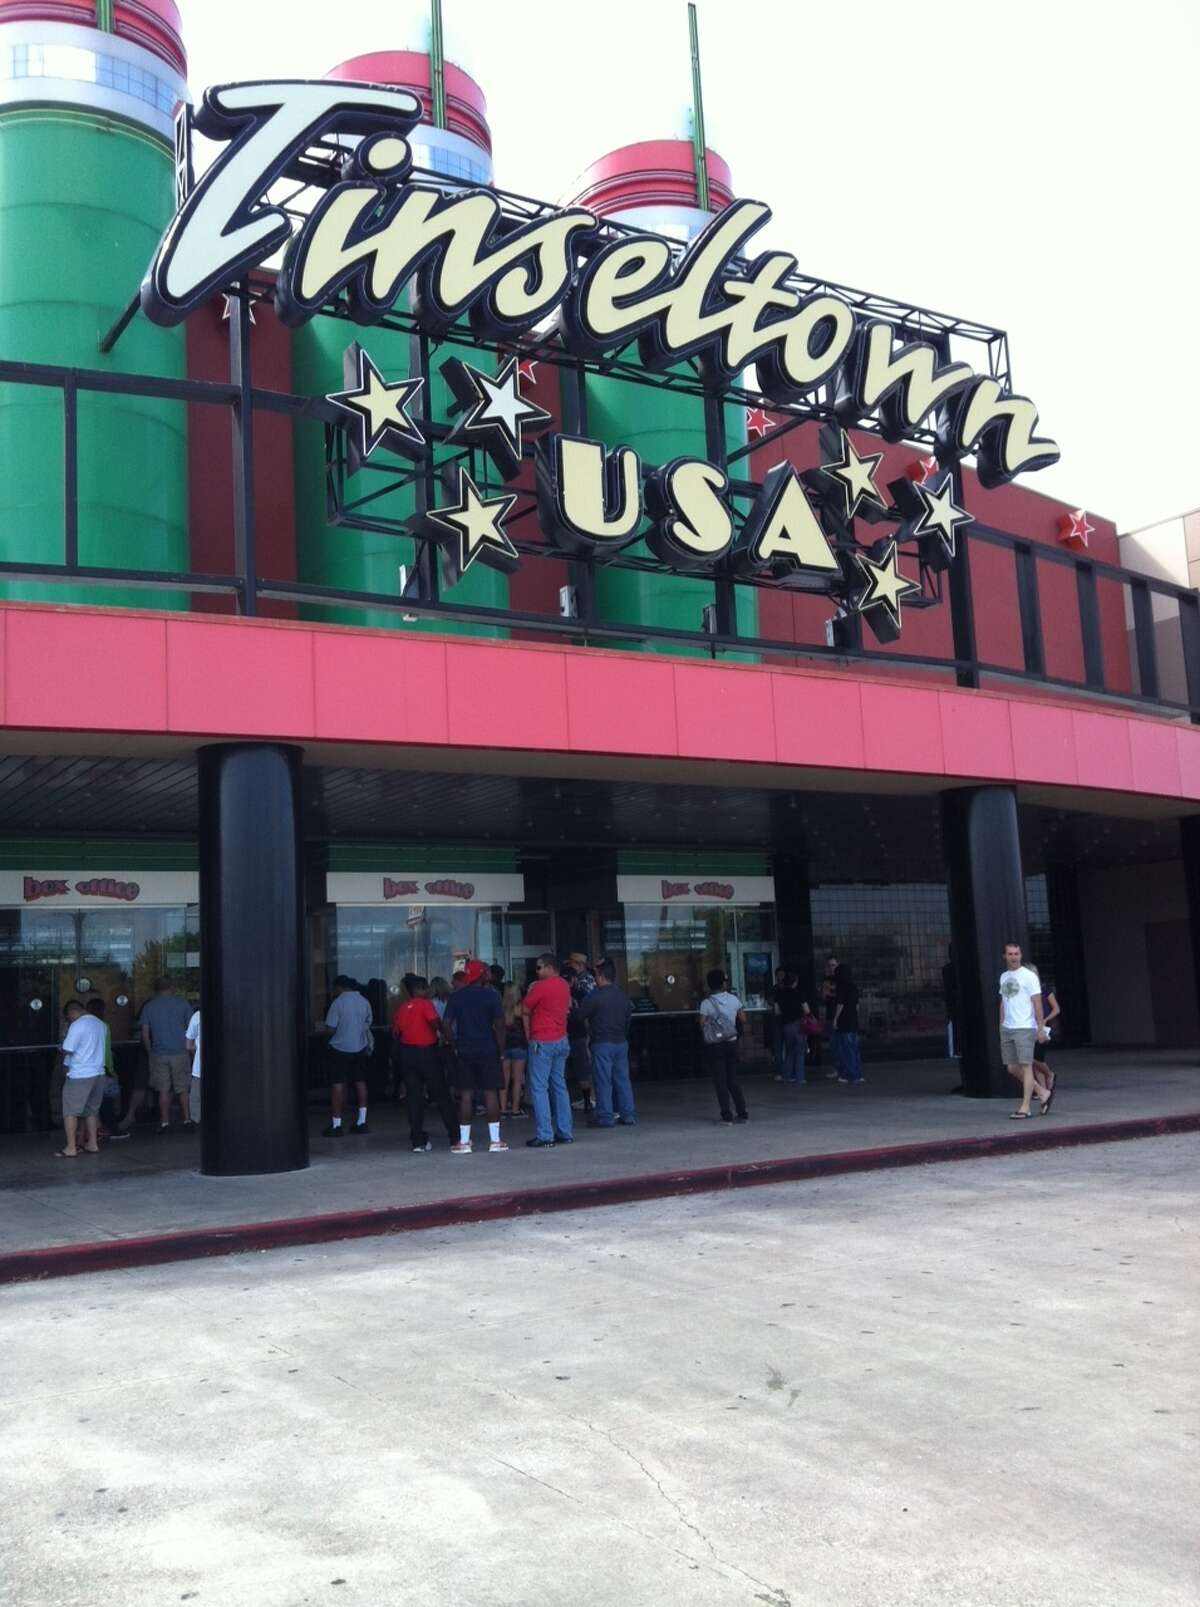 TinseltownThe iconic movie theater was the place to be on a Friday night.